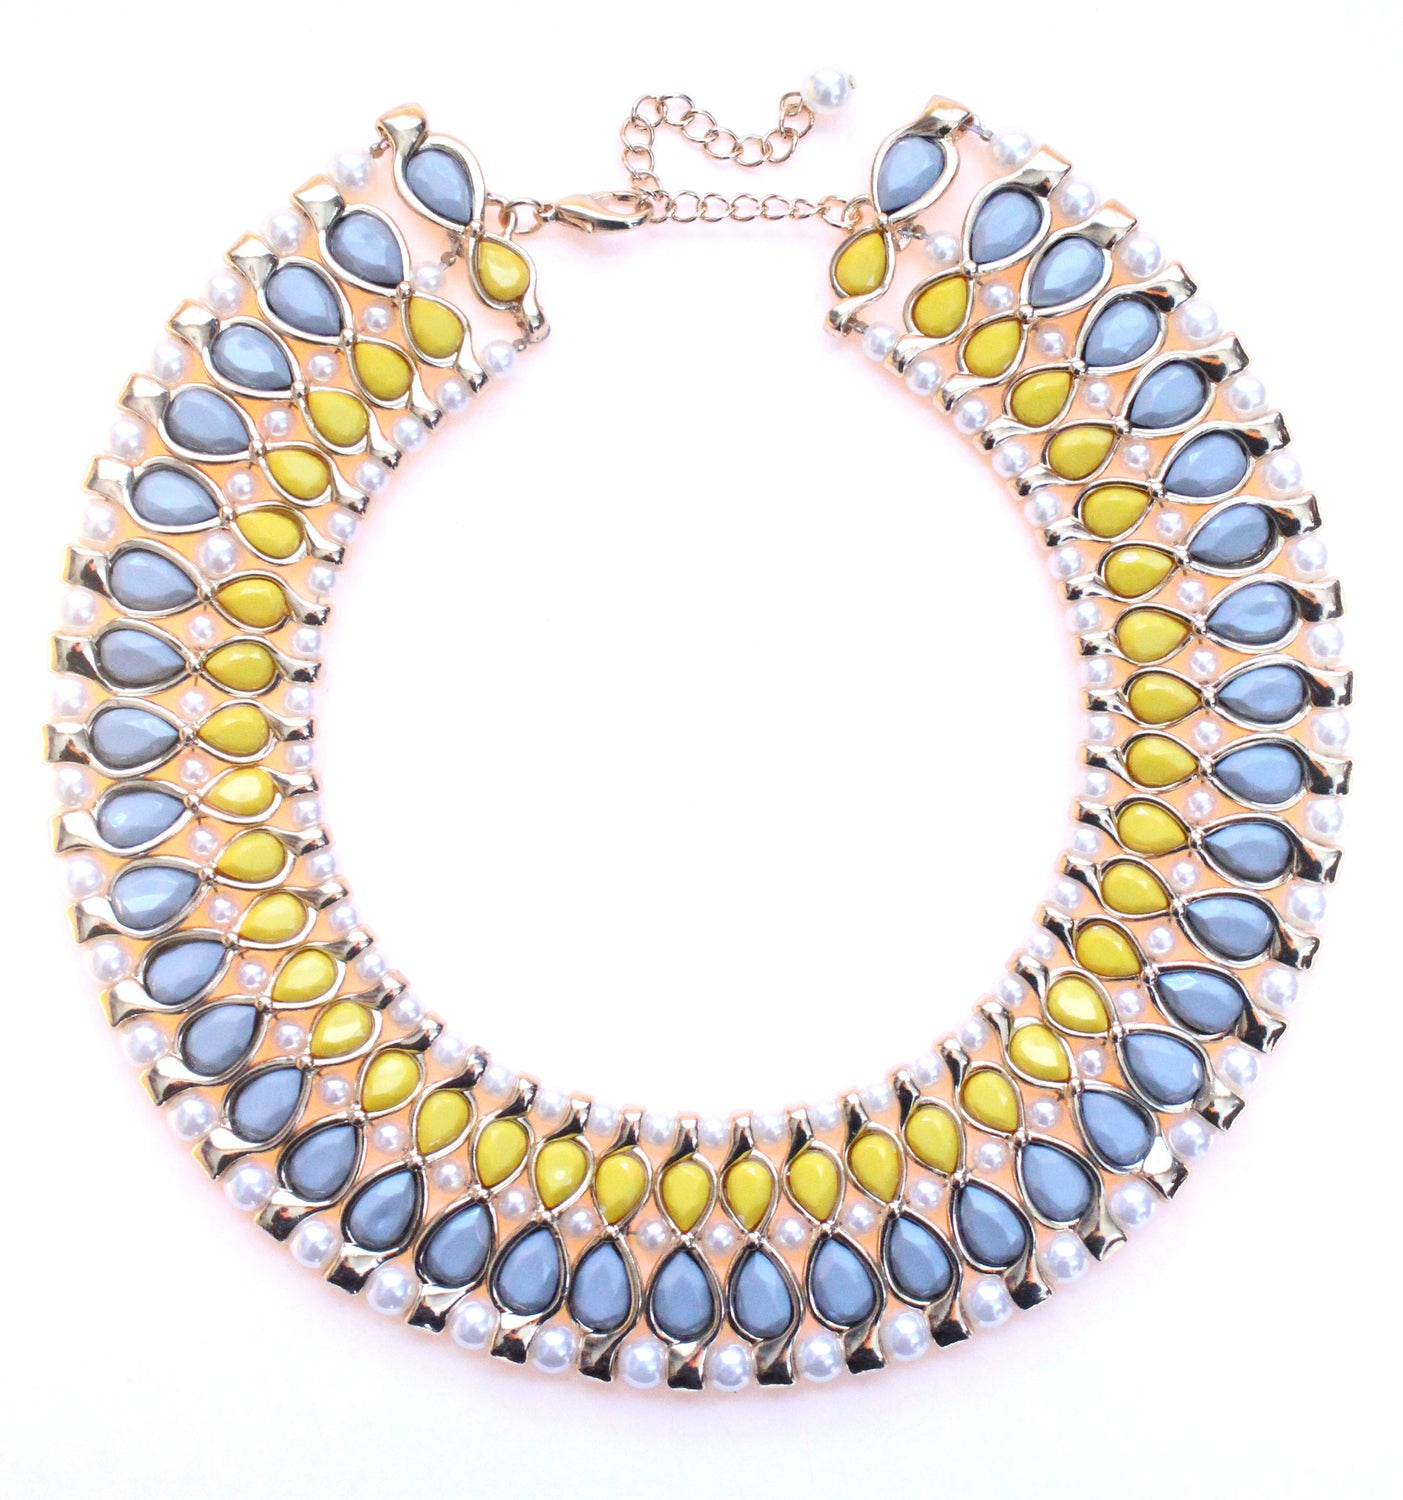 Beaded & Jeweled Collar Statement Necklace- Light Gray & Yellow